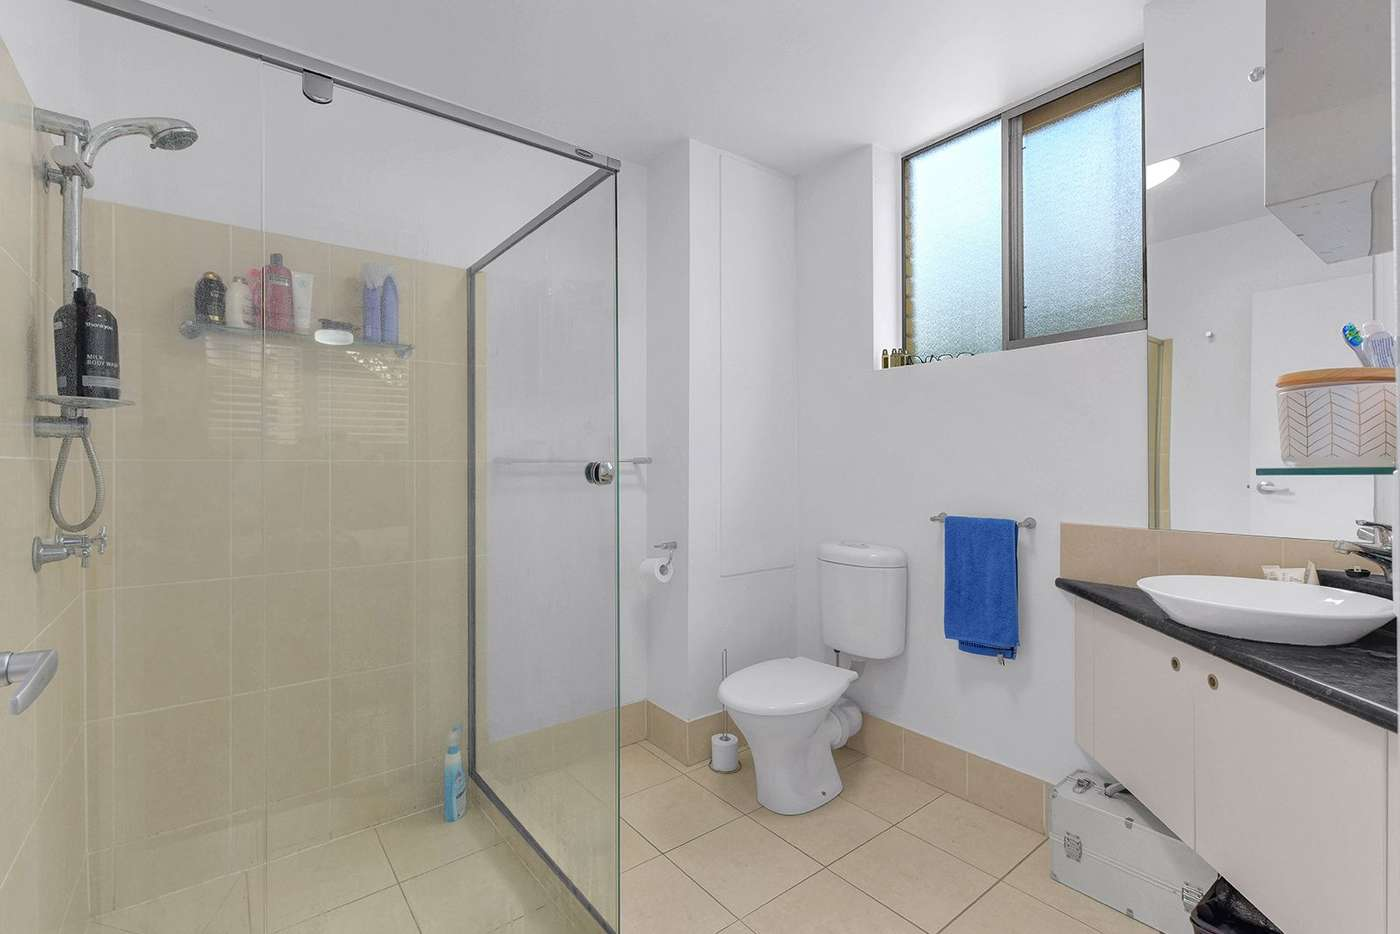 Seventh view of Homely apartment listing, 4/16 Mullens Street, Hamilton QLD 4007